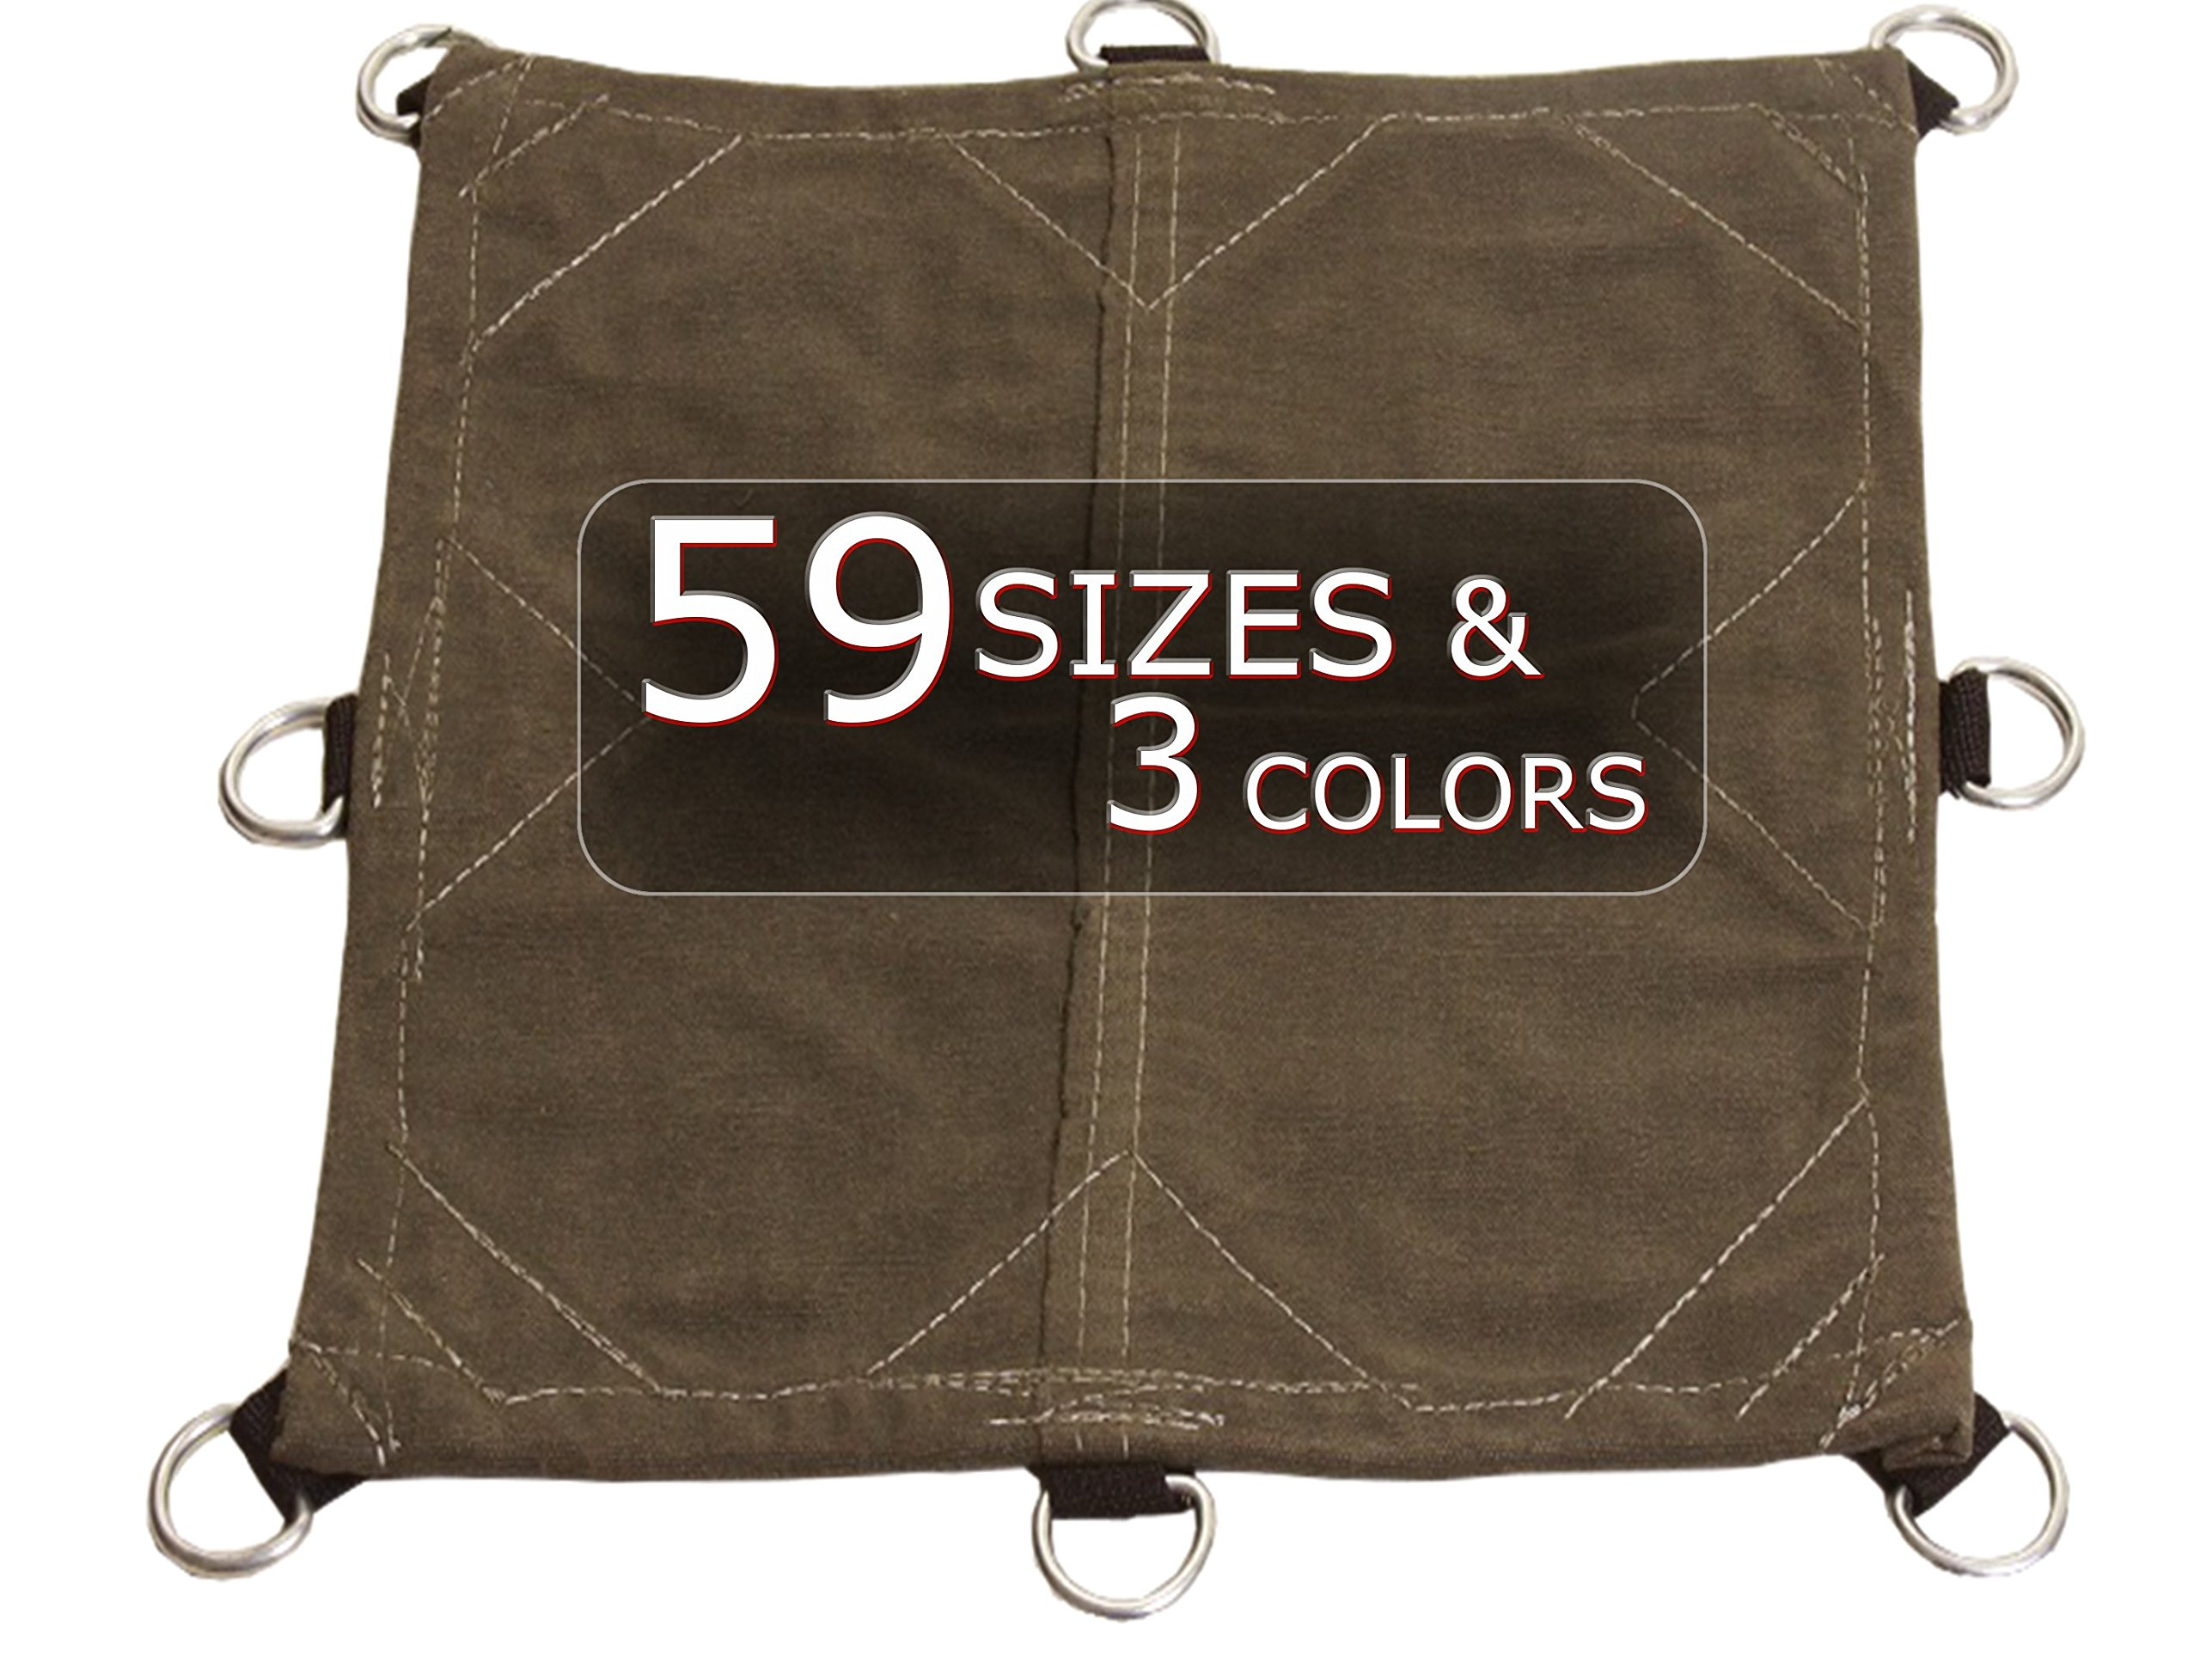 20x40 12oz Heavy Duty Canvas Tarp with D-Rings - Extreme Performance, Equipment, Farm, Home, Woodpile, Construction, Machinery Cover - Choose Size and D-Ring Spacing in drop-down below.